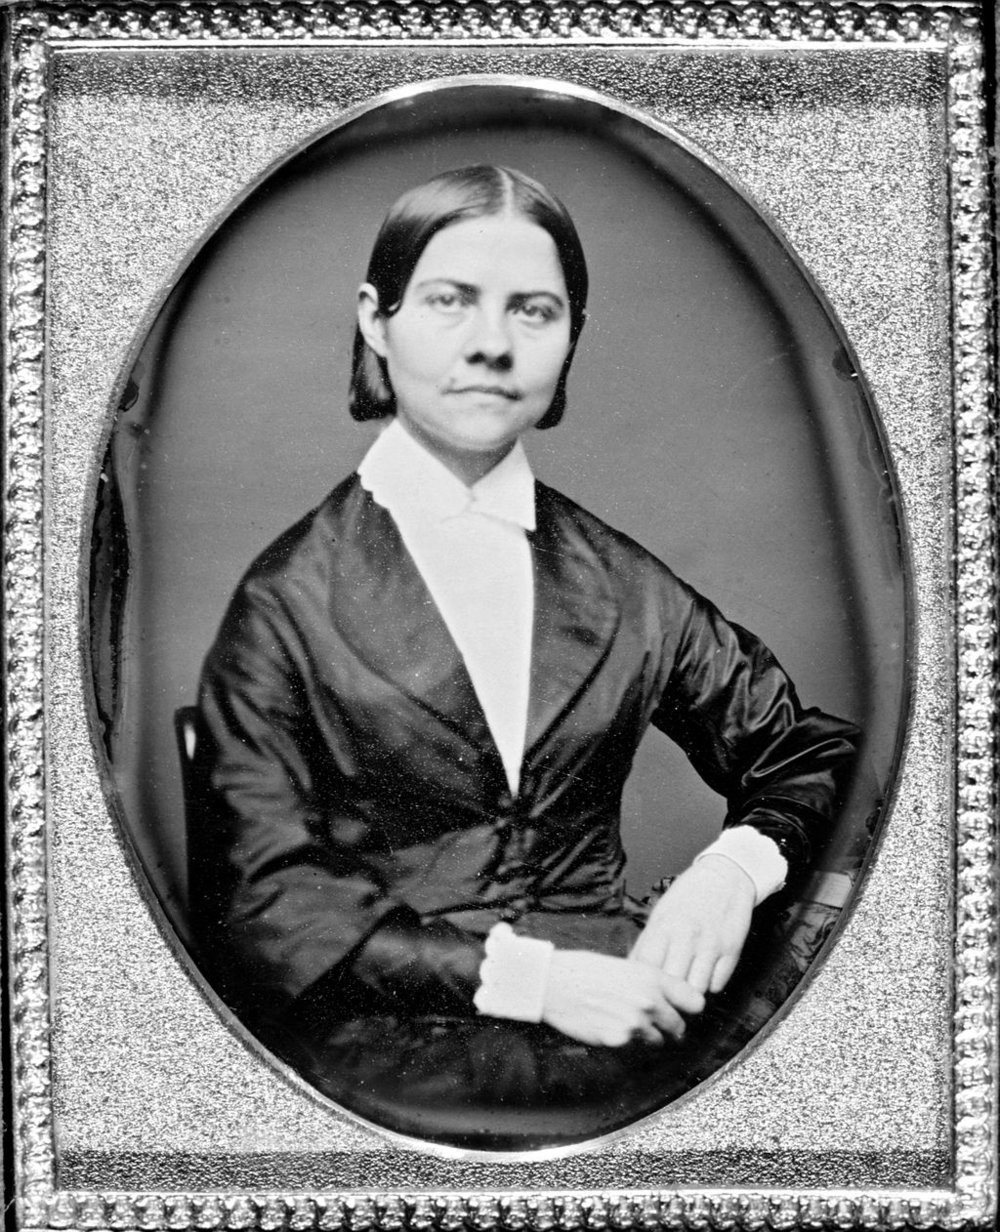 Lucy Stone (1818-1893), prominent women's suffragist and abolitionist. She became the first woman from Massachusetts to earn a college degree and was an active public advocate on behalf of women's rights and anti-slavery initiatives. Stone pursued her advocacy despite often hostile laws of the time preventing women from speaking in public.